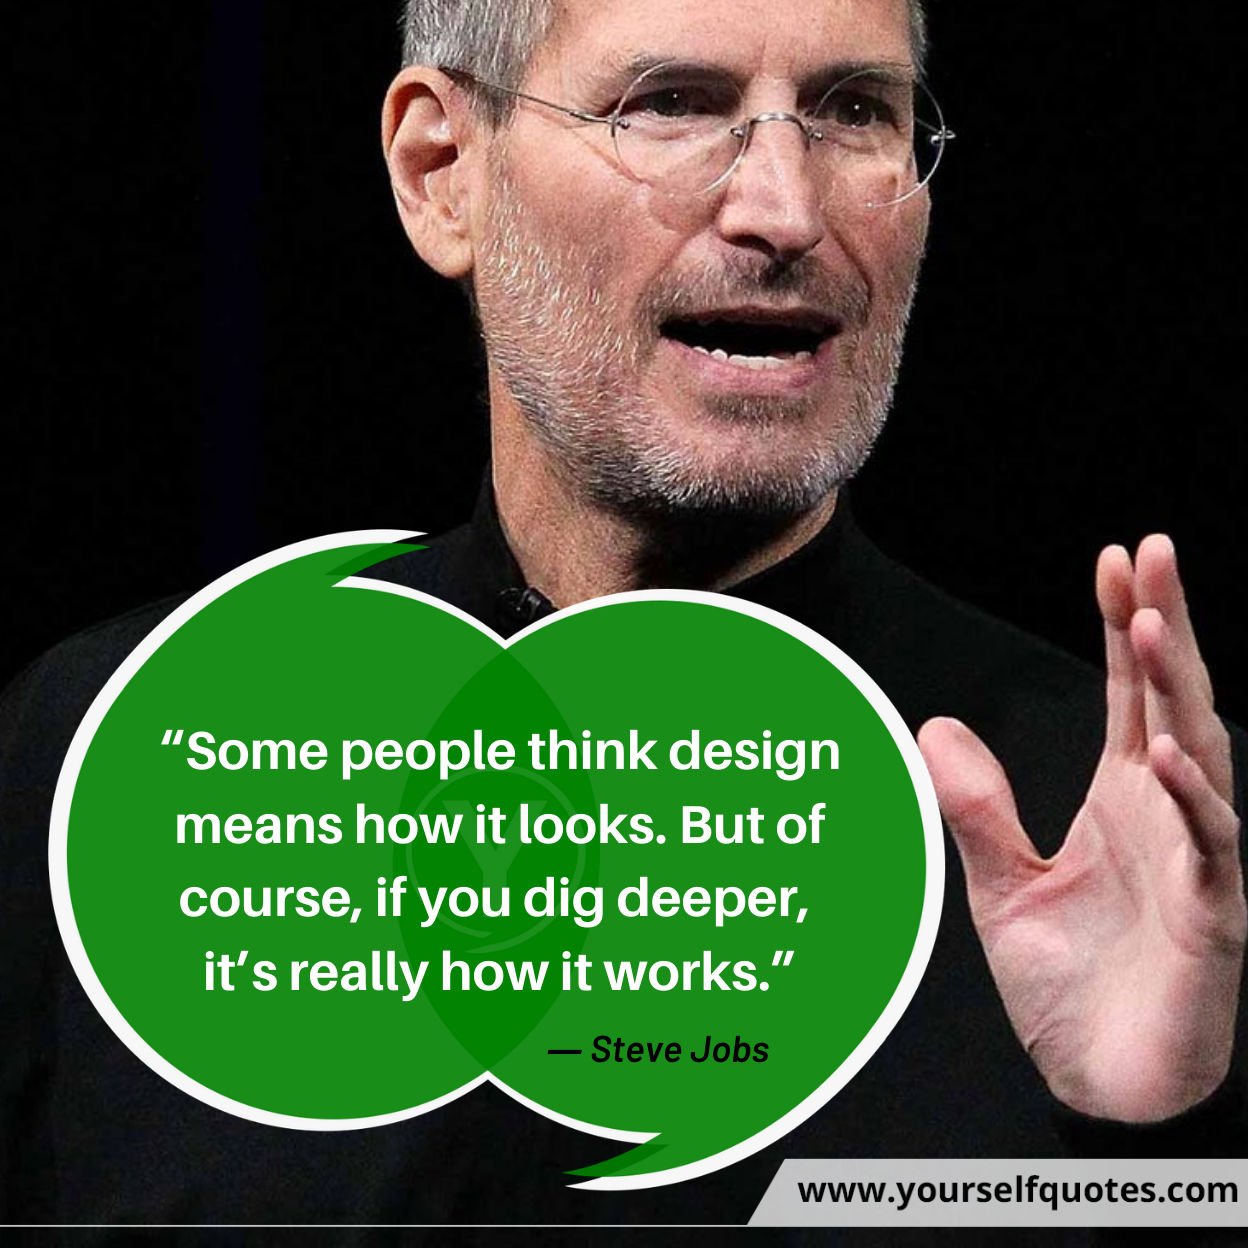 Quotes by Steve Jobs